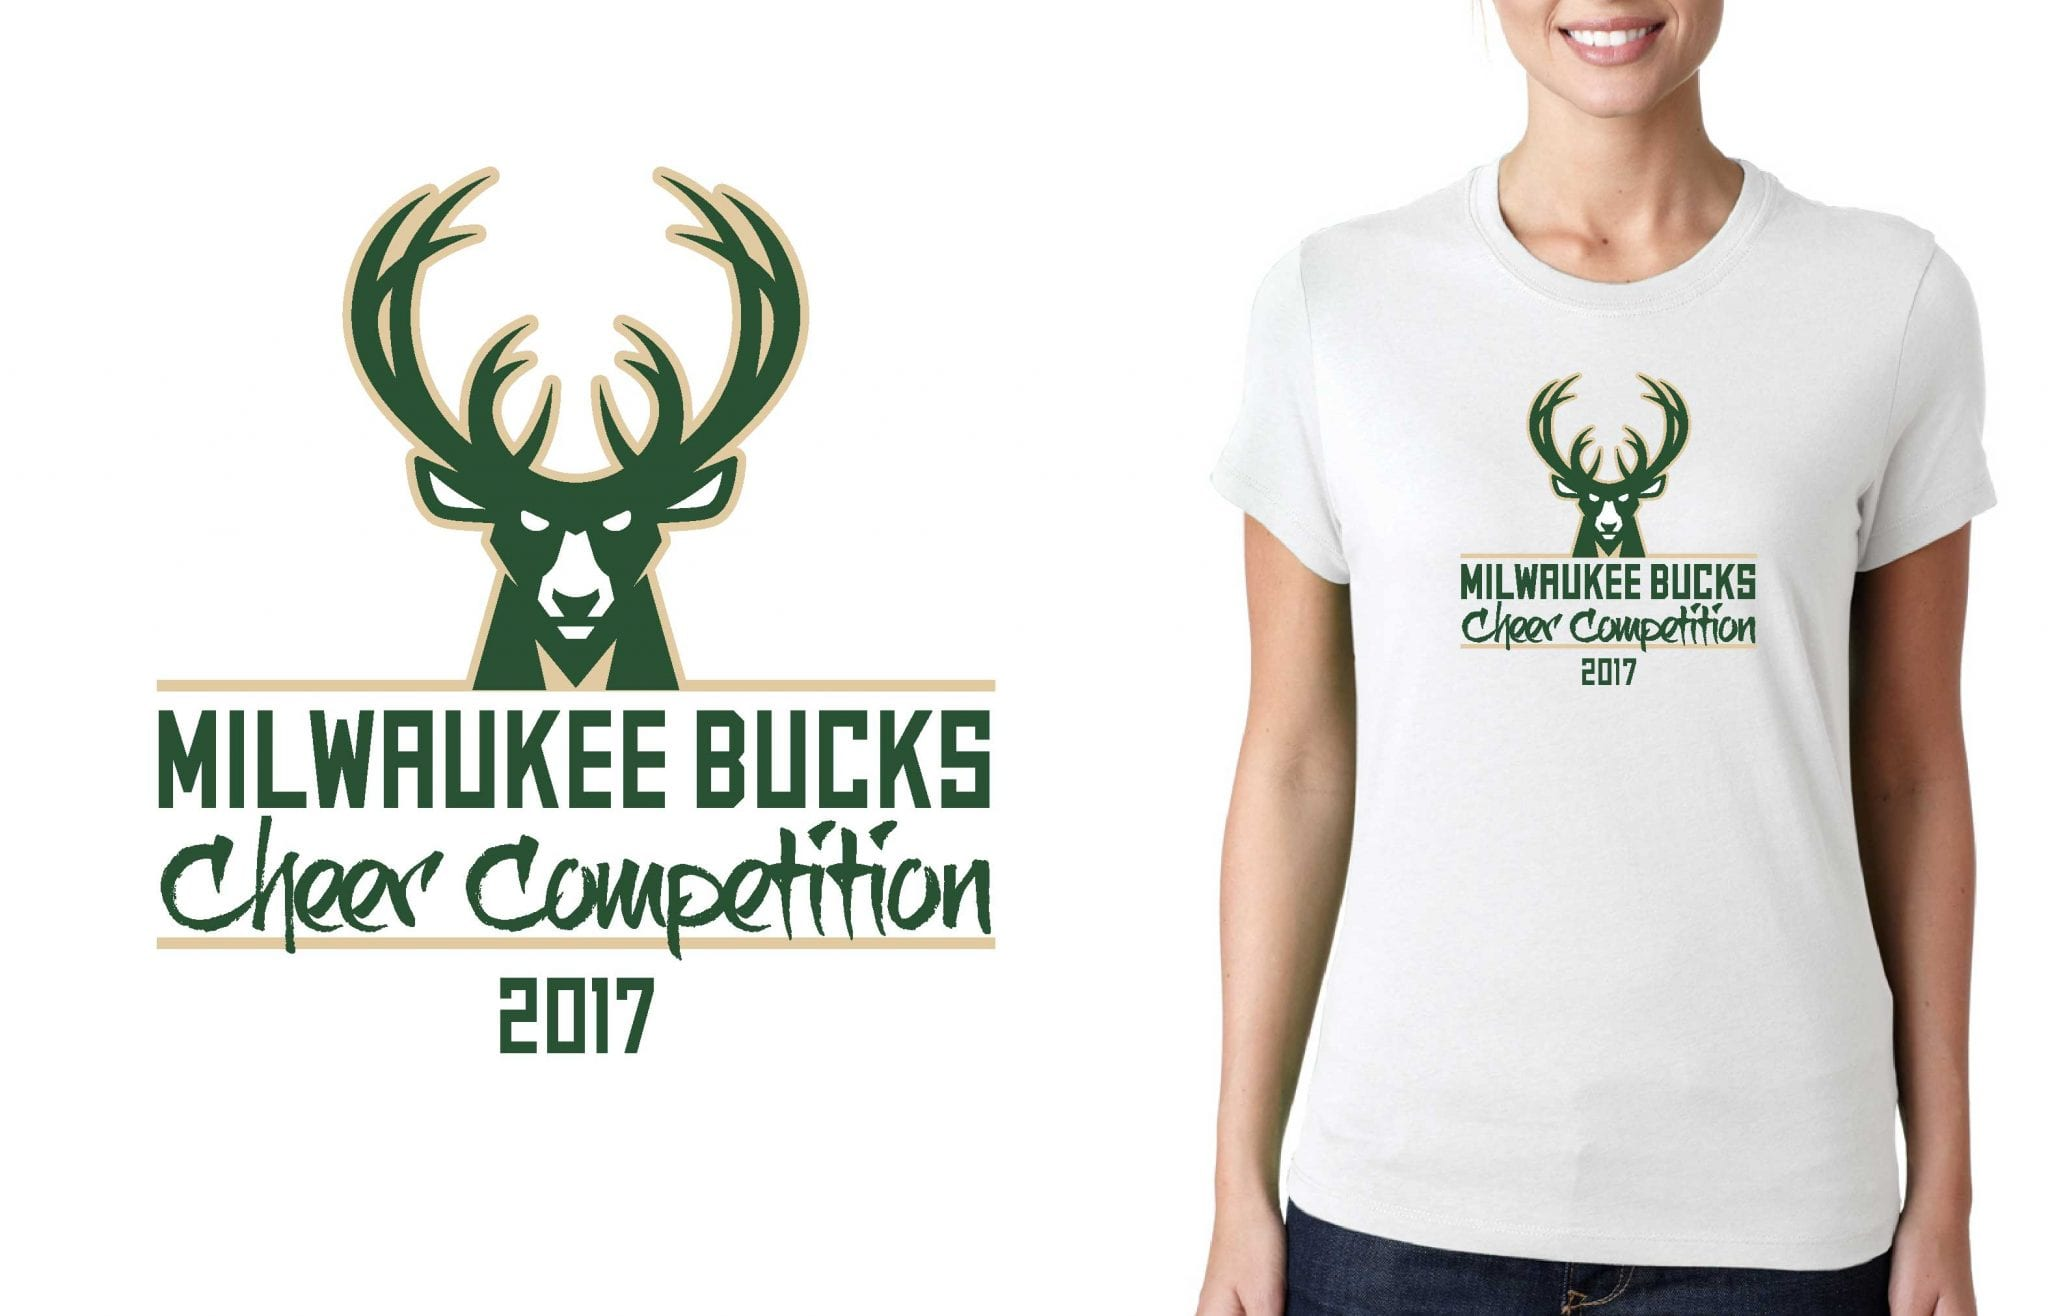 2017 Milwaukee Bucks Cheer Competition vector logo design for cheer t-shirt UrArtStudio